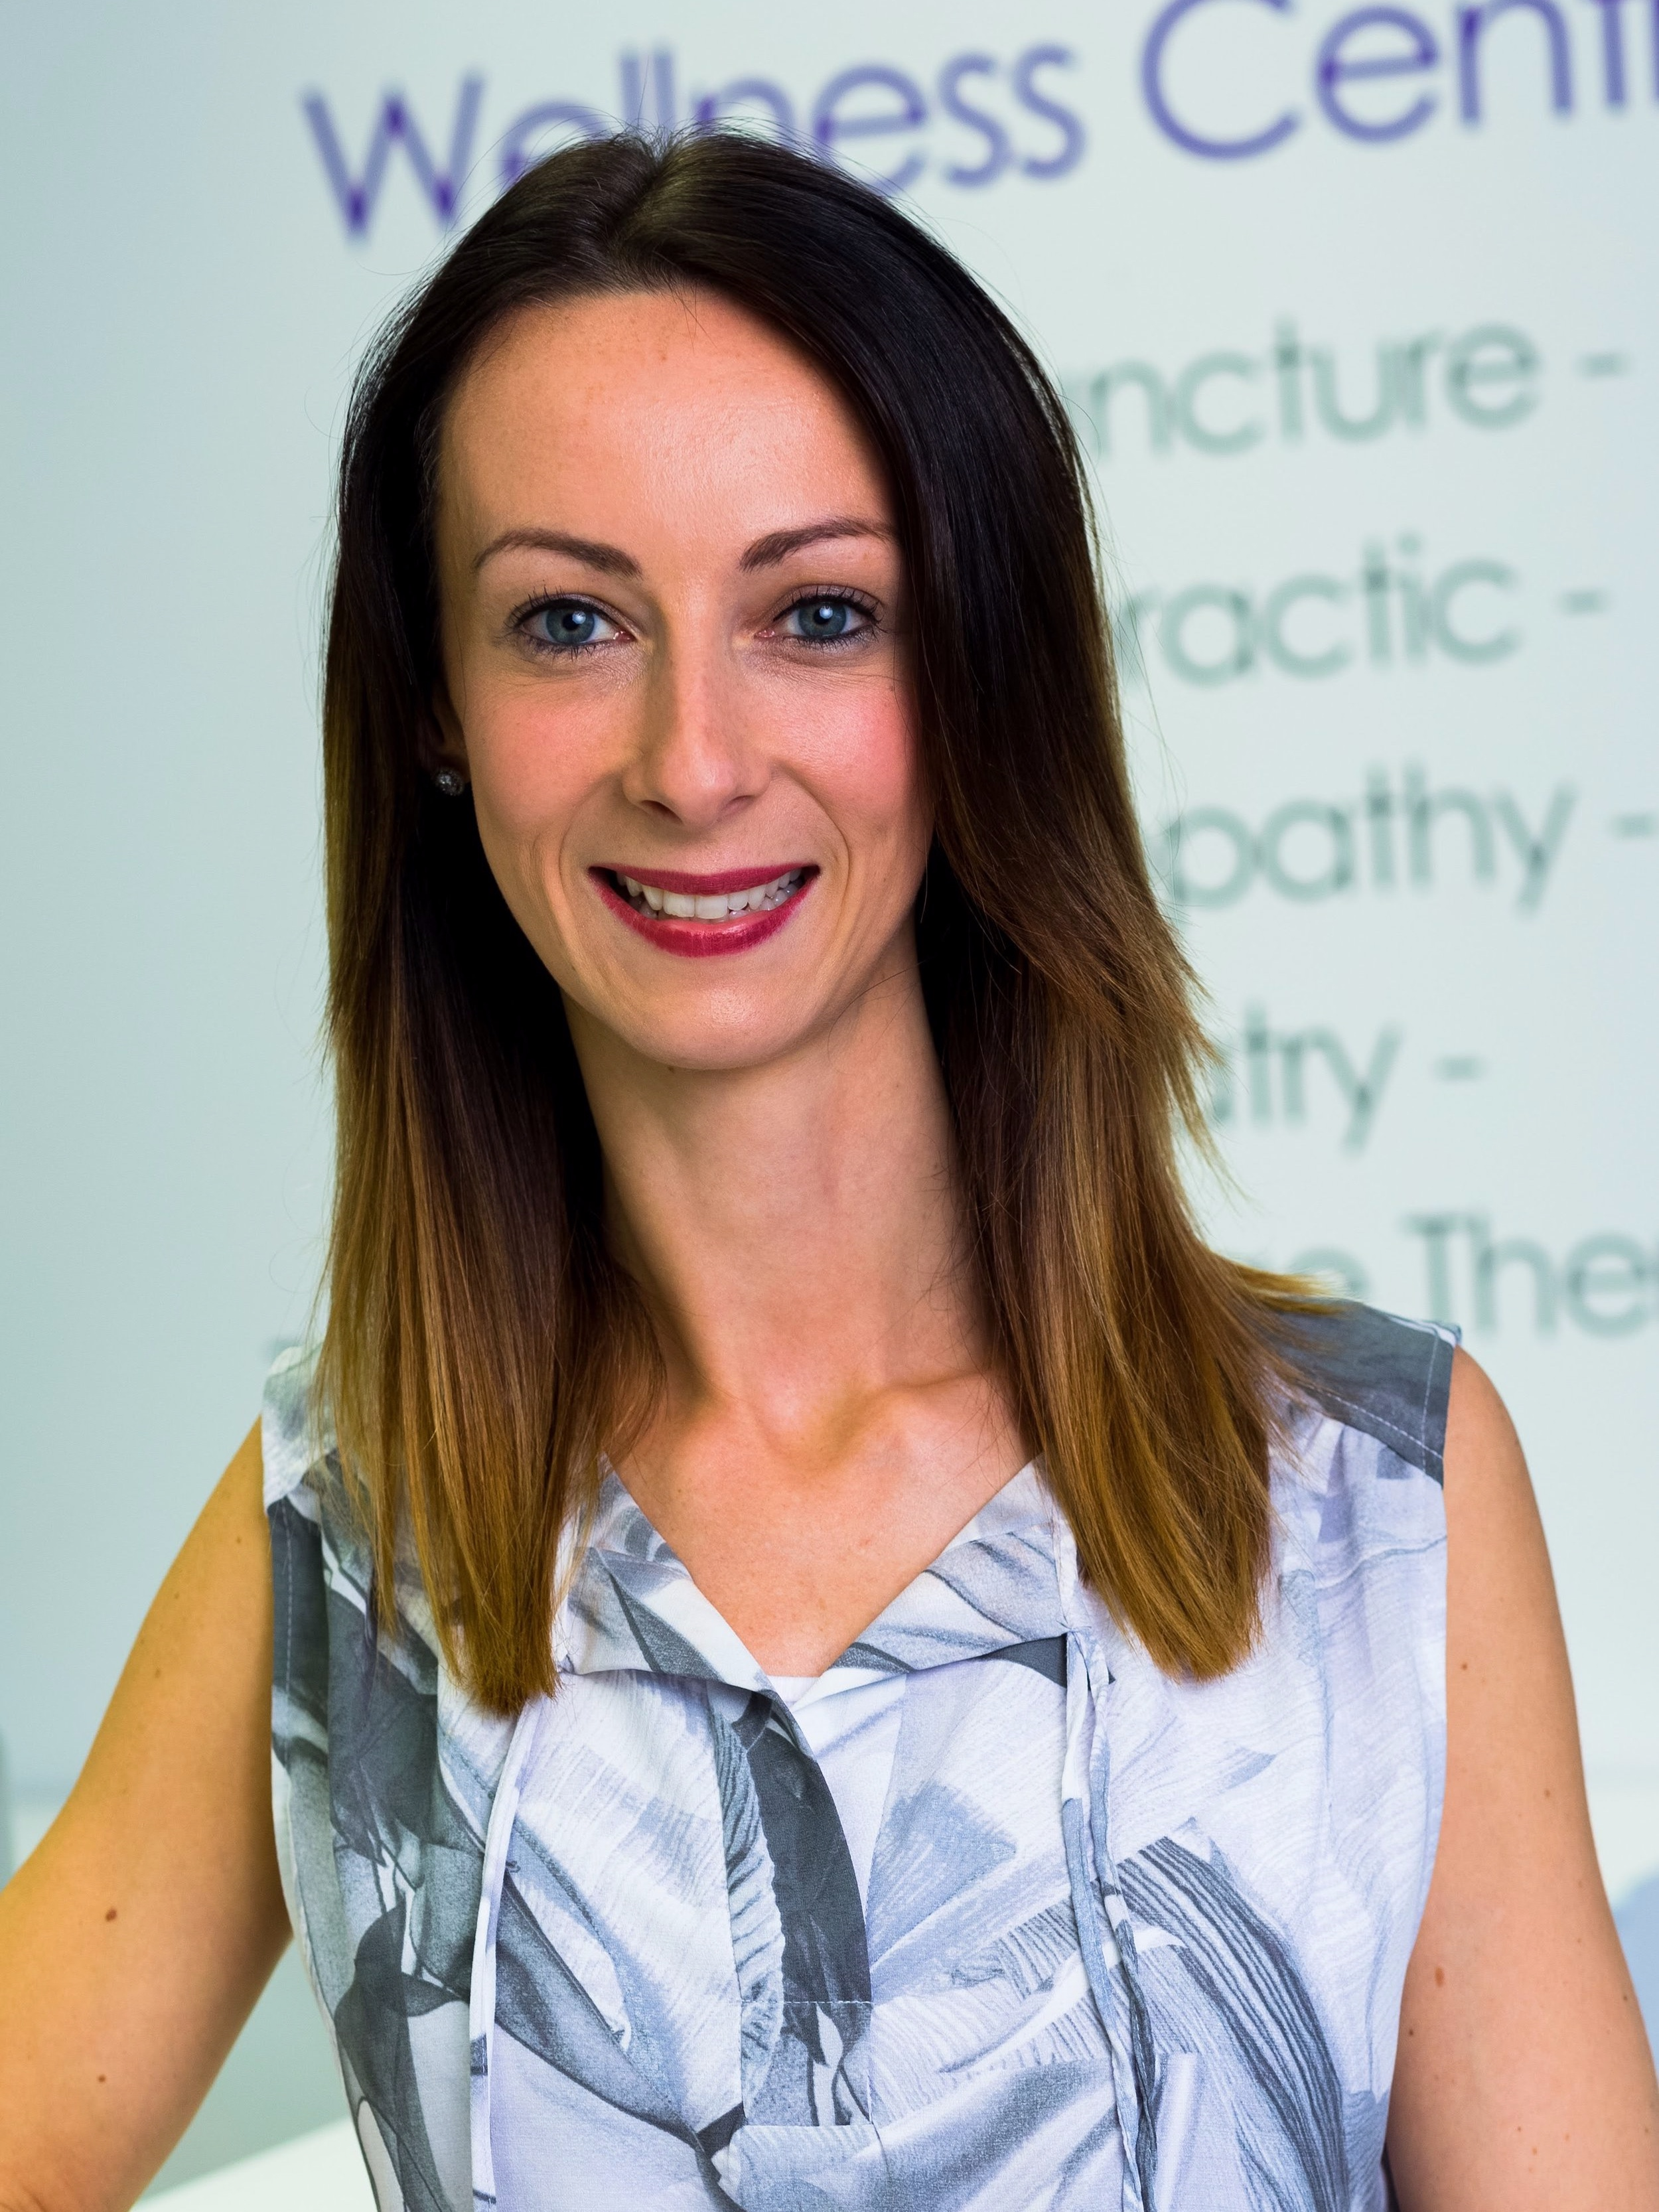 Salford+Doctor+Of+Chiropractic+Dr+Lindsay+beardswworth+at+salford+chiropractic+clinic21.jpg